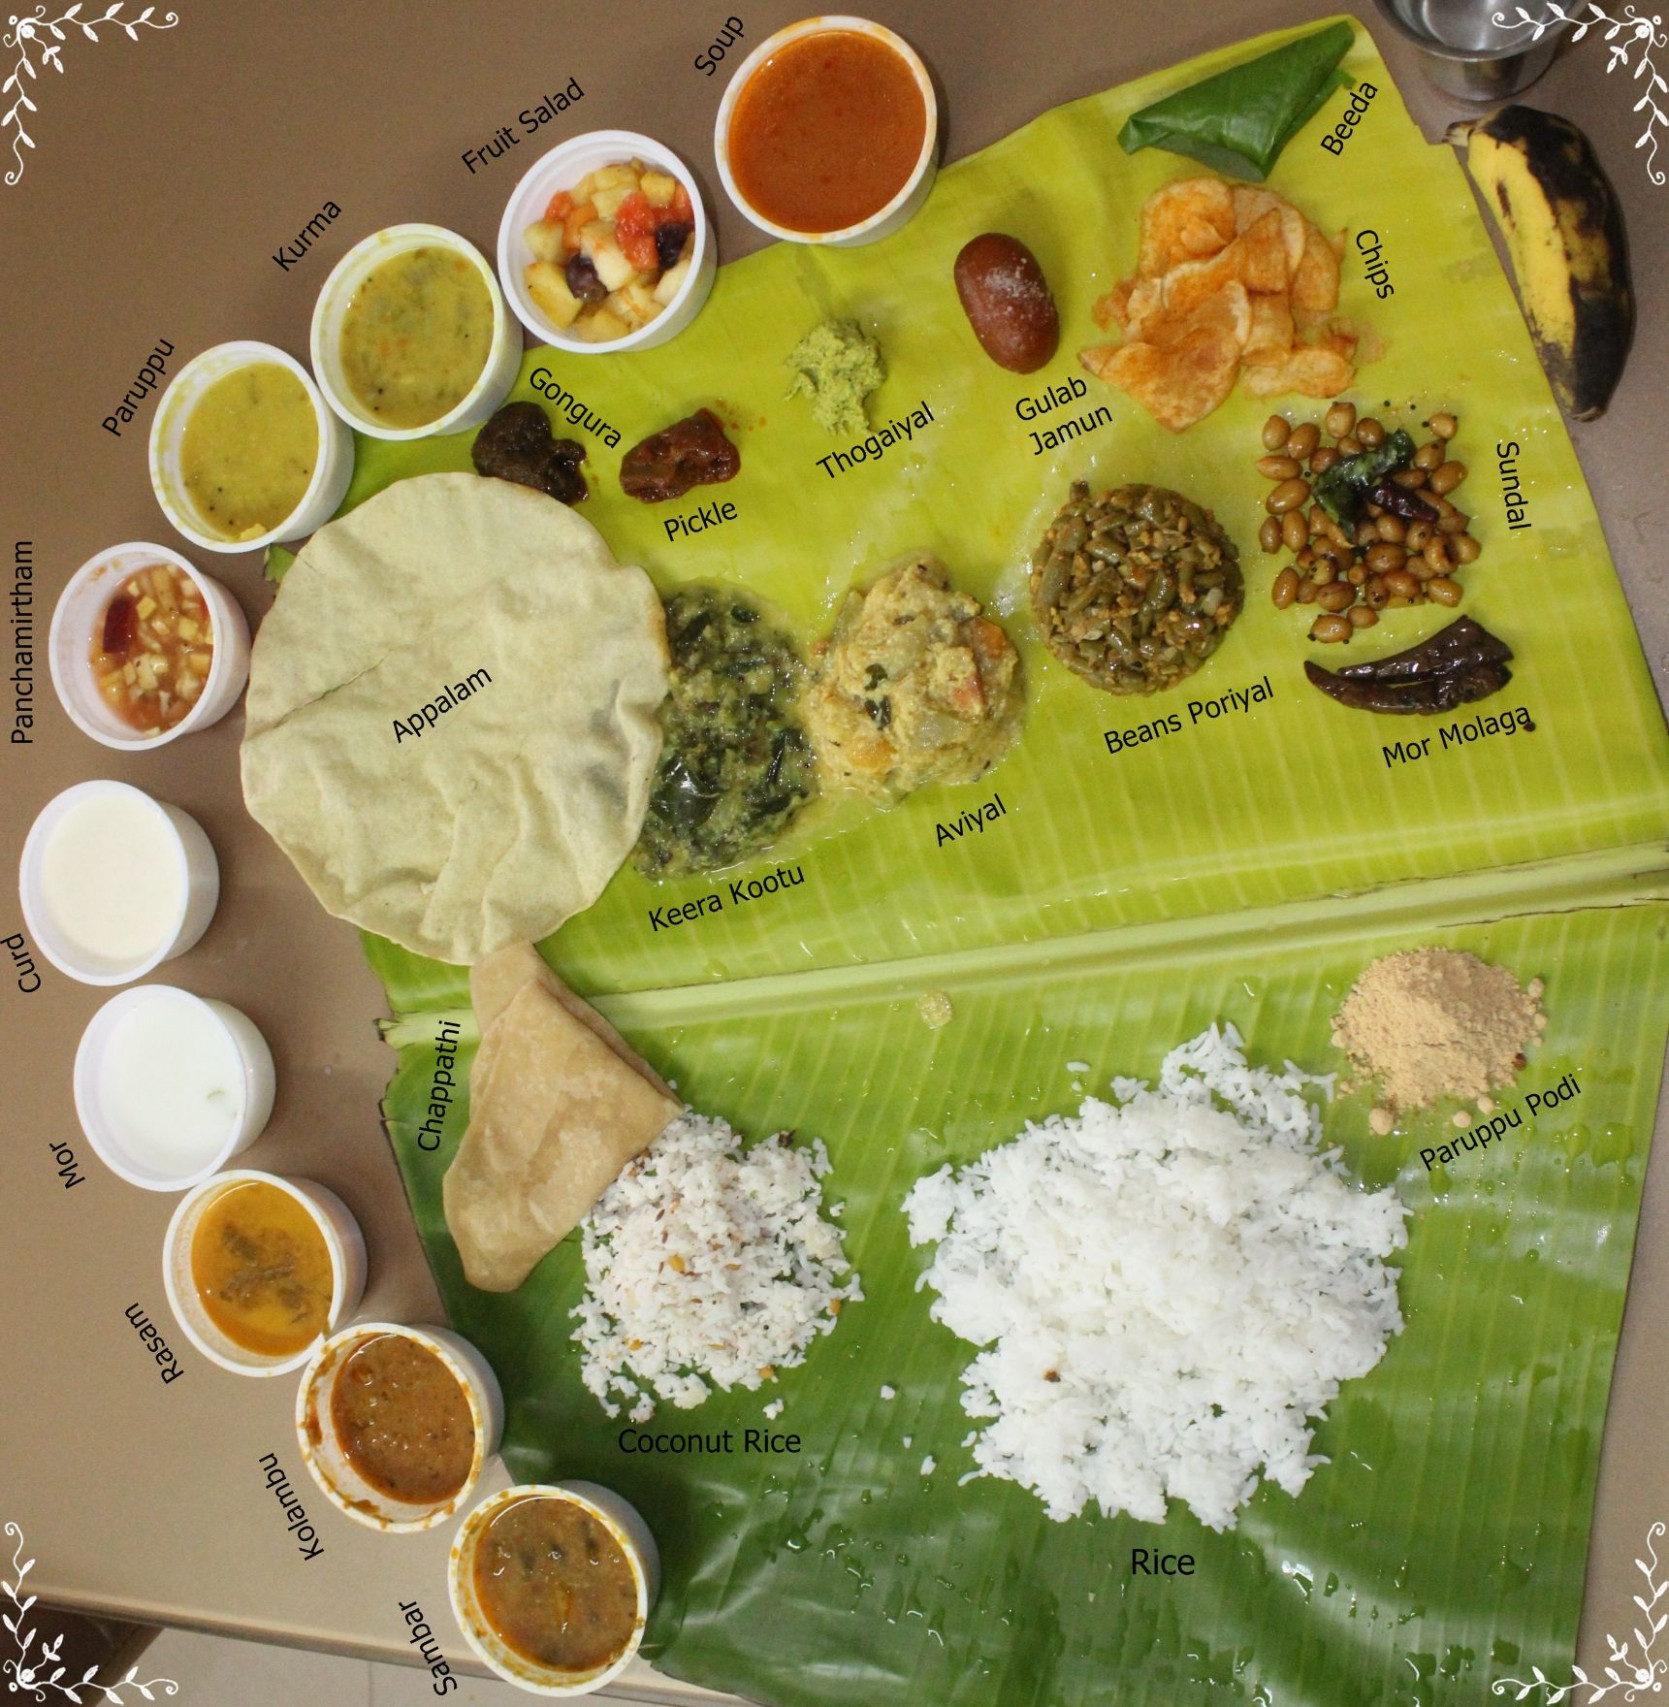 Vegetarian Meals in Tamil Nadu traditionally served on a ...